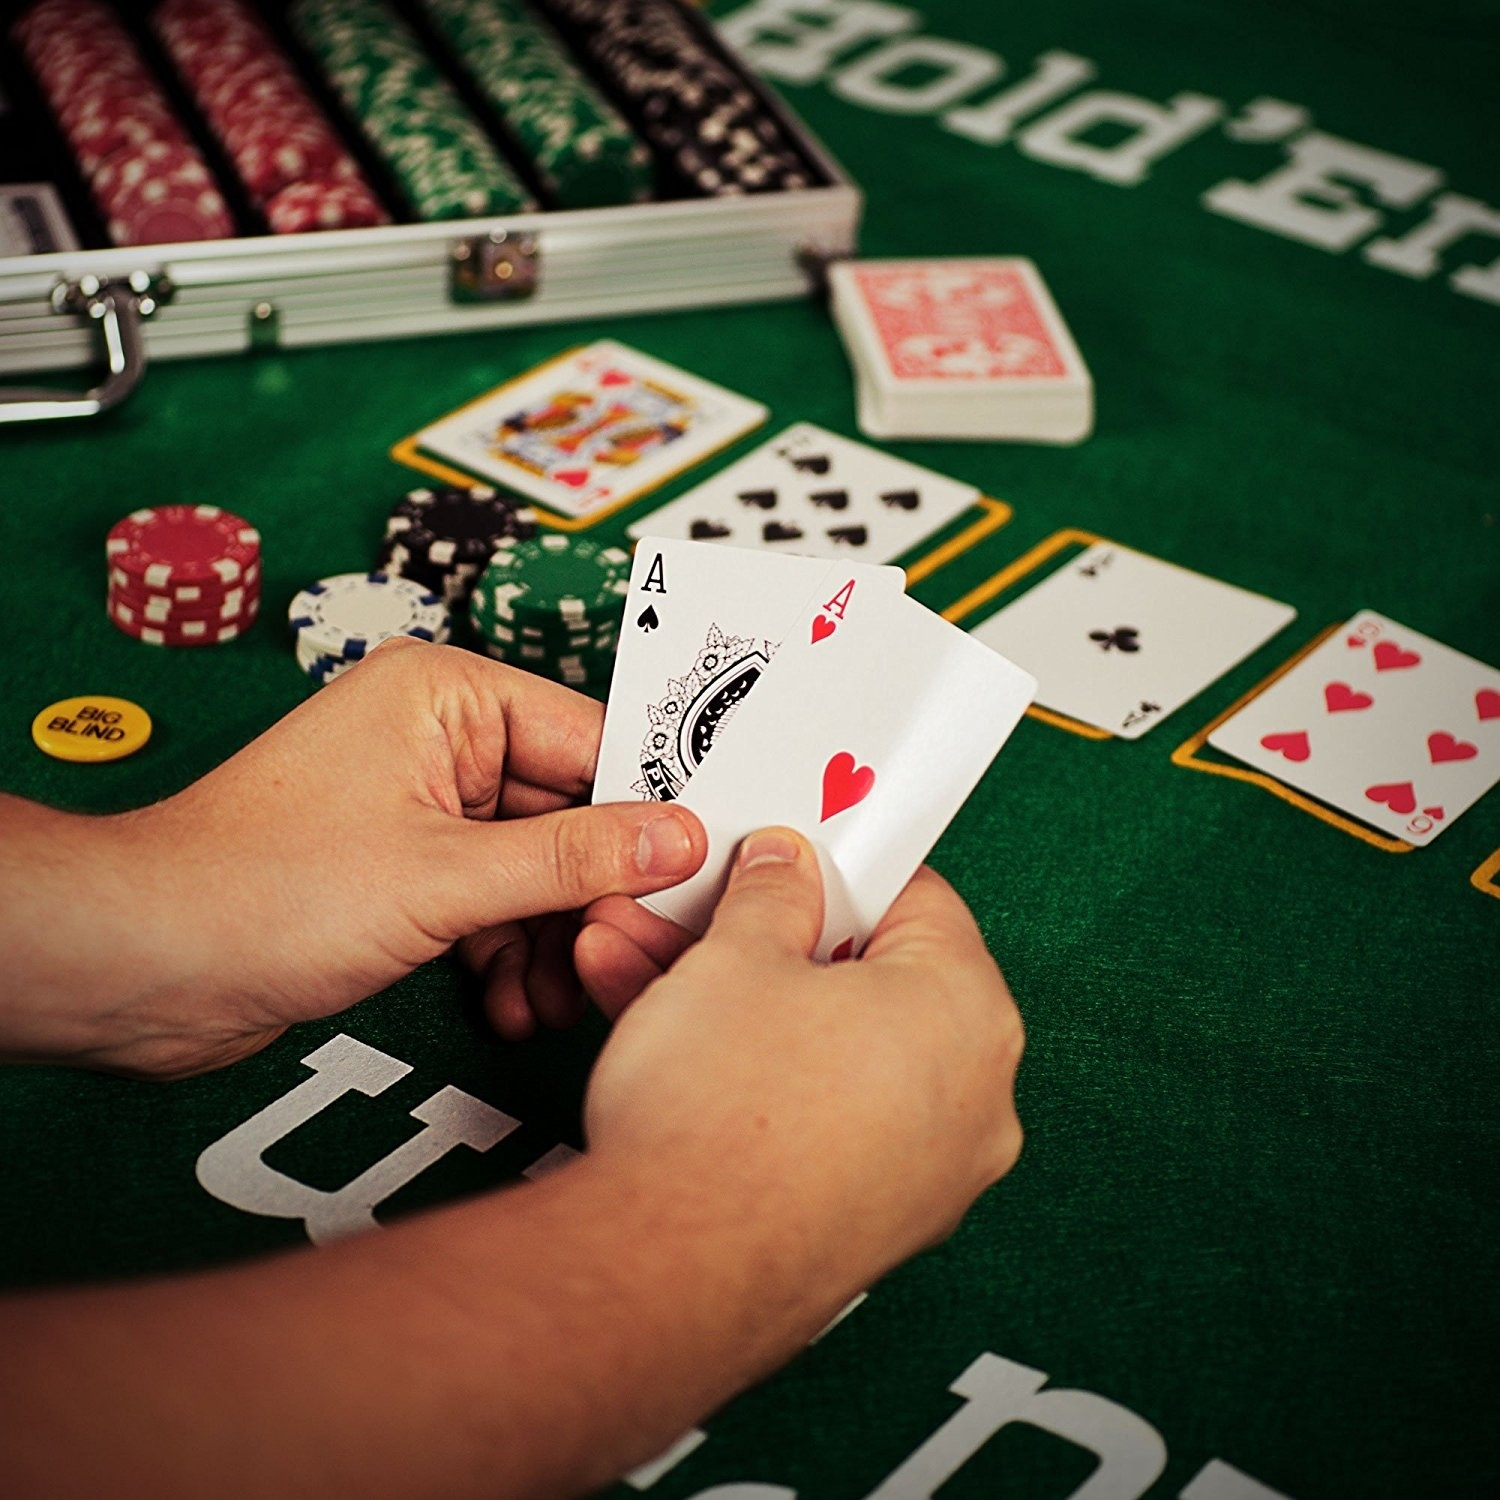 How to make money online playing poker